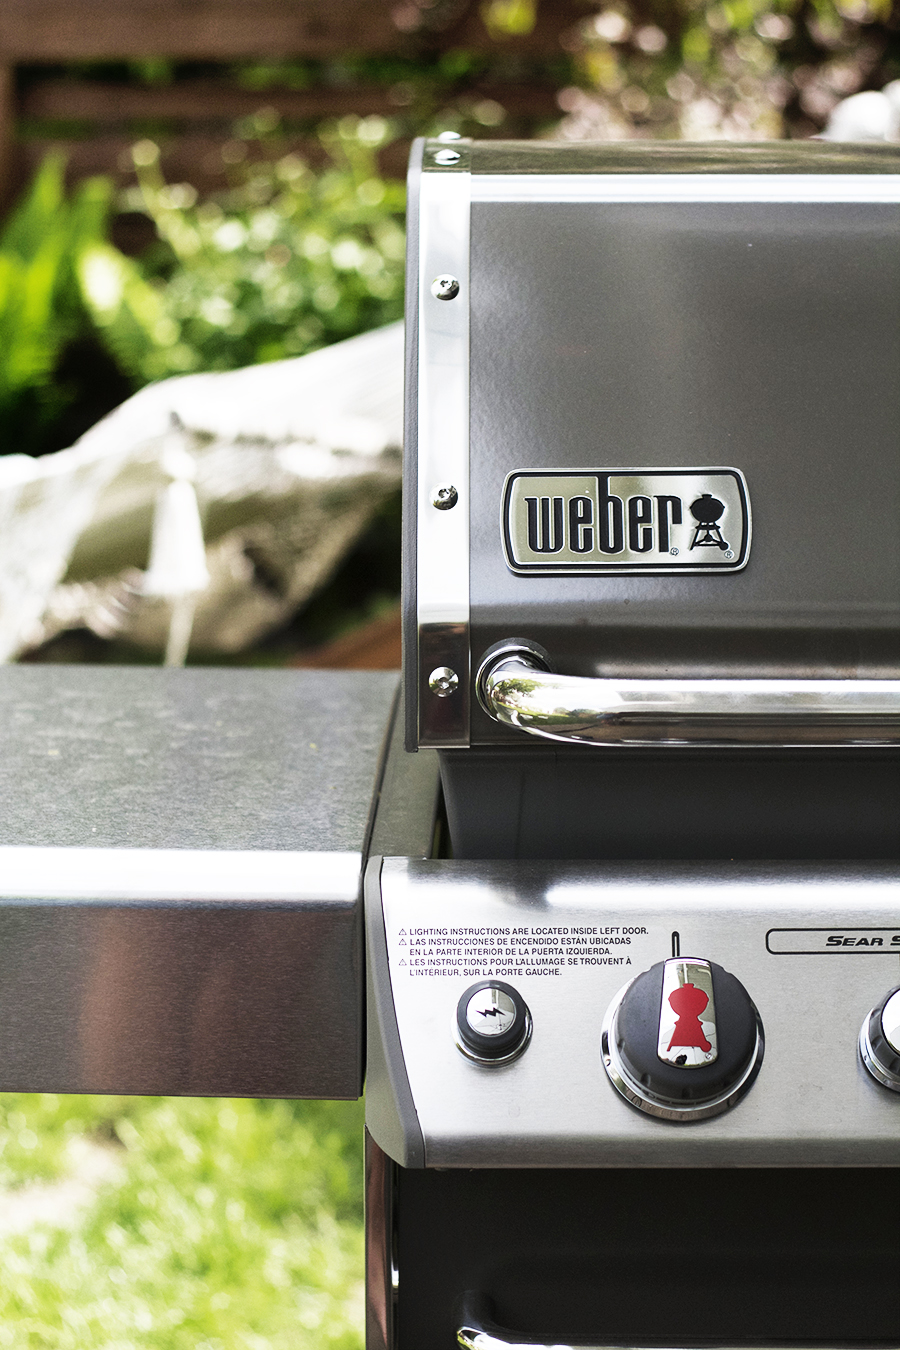 Summer Time Parties with a new Weber Grill